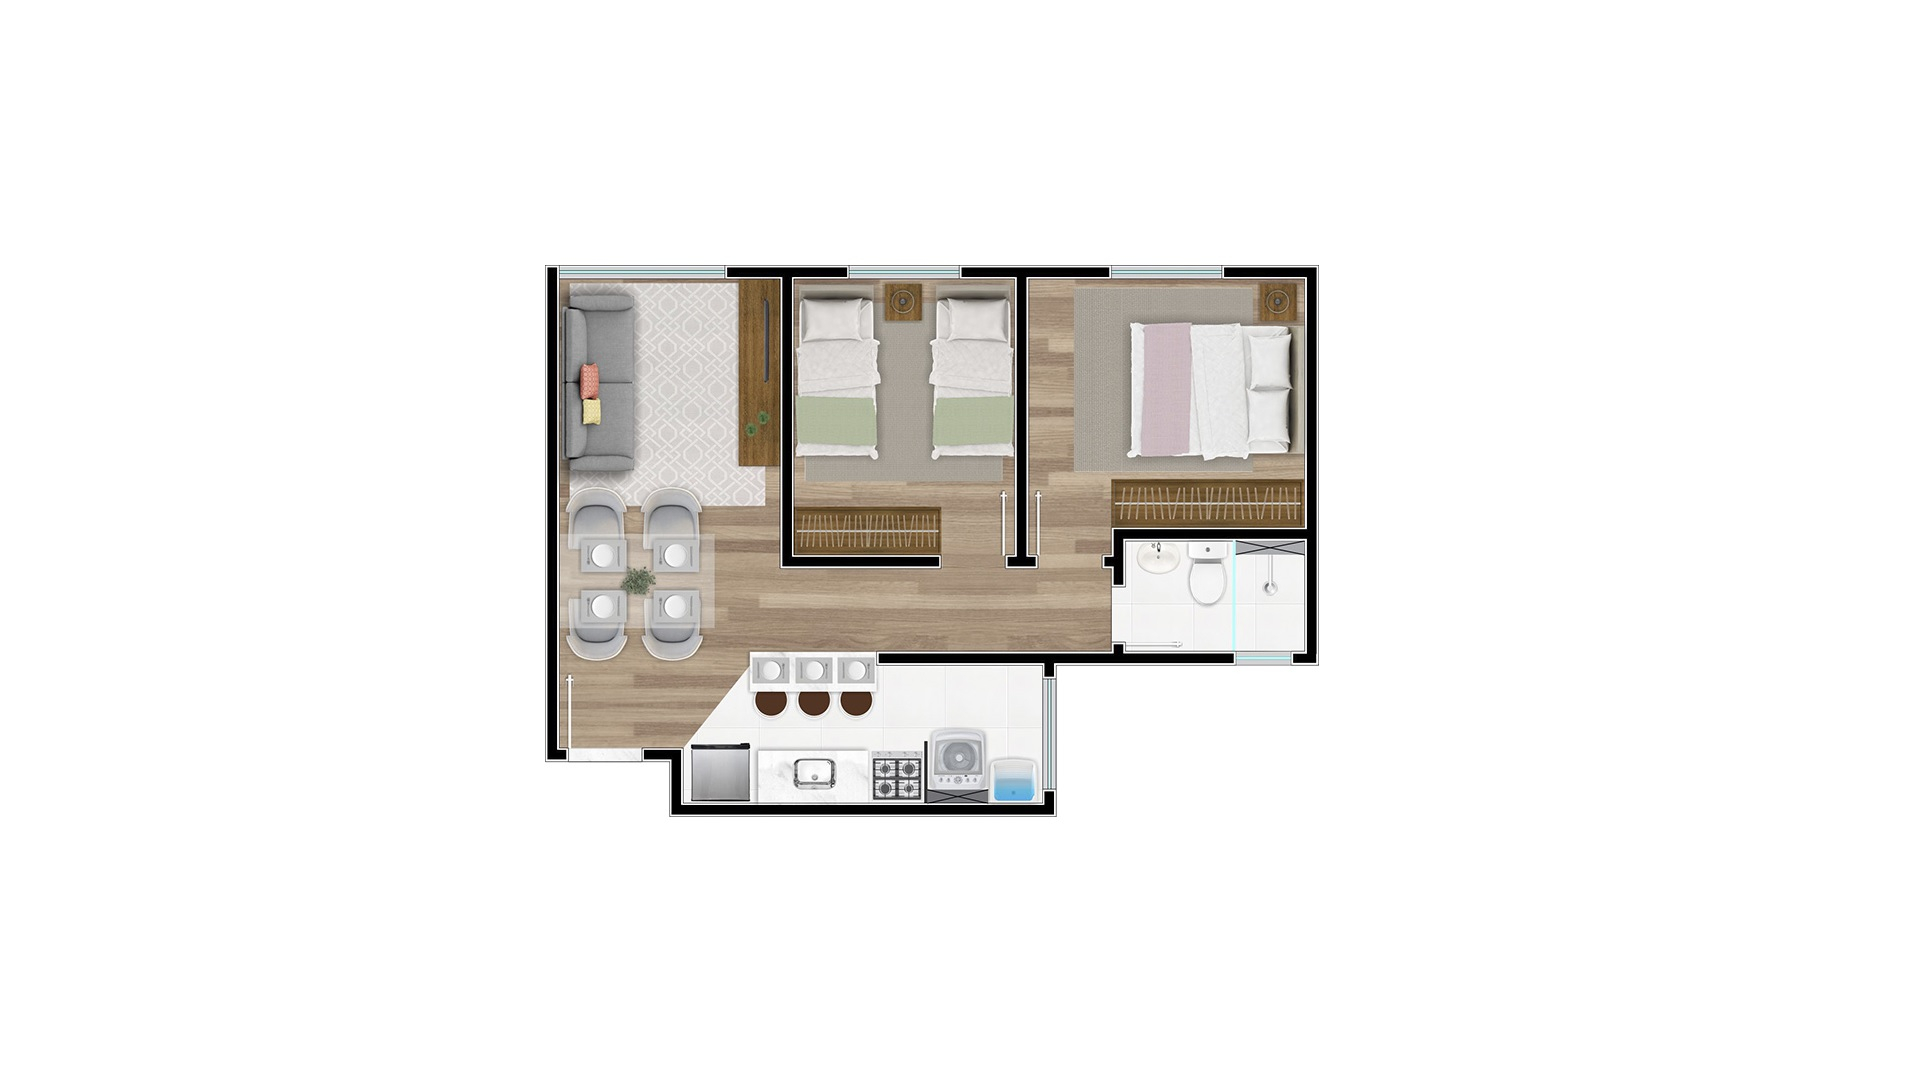 Tipo 2 - Millennium Residence